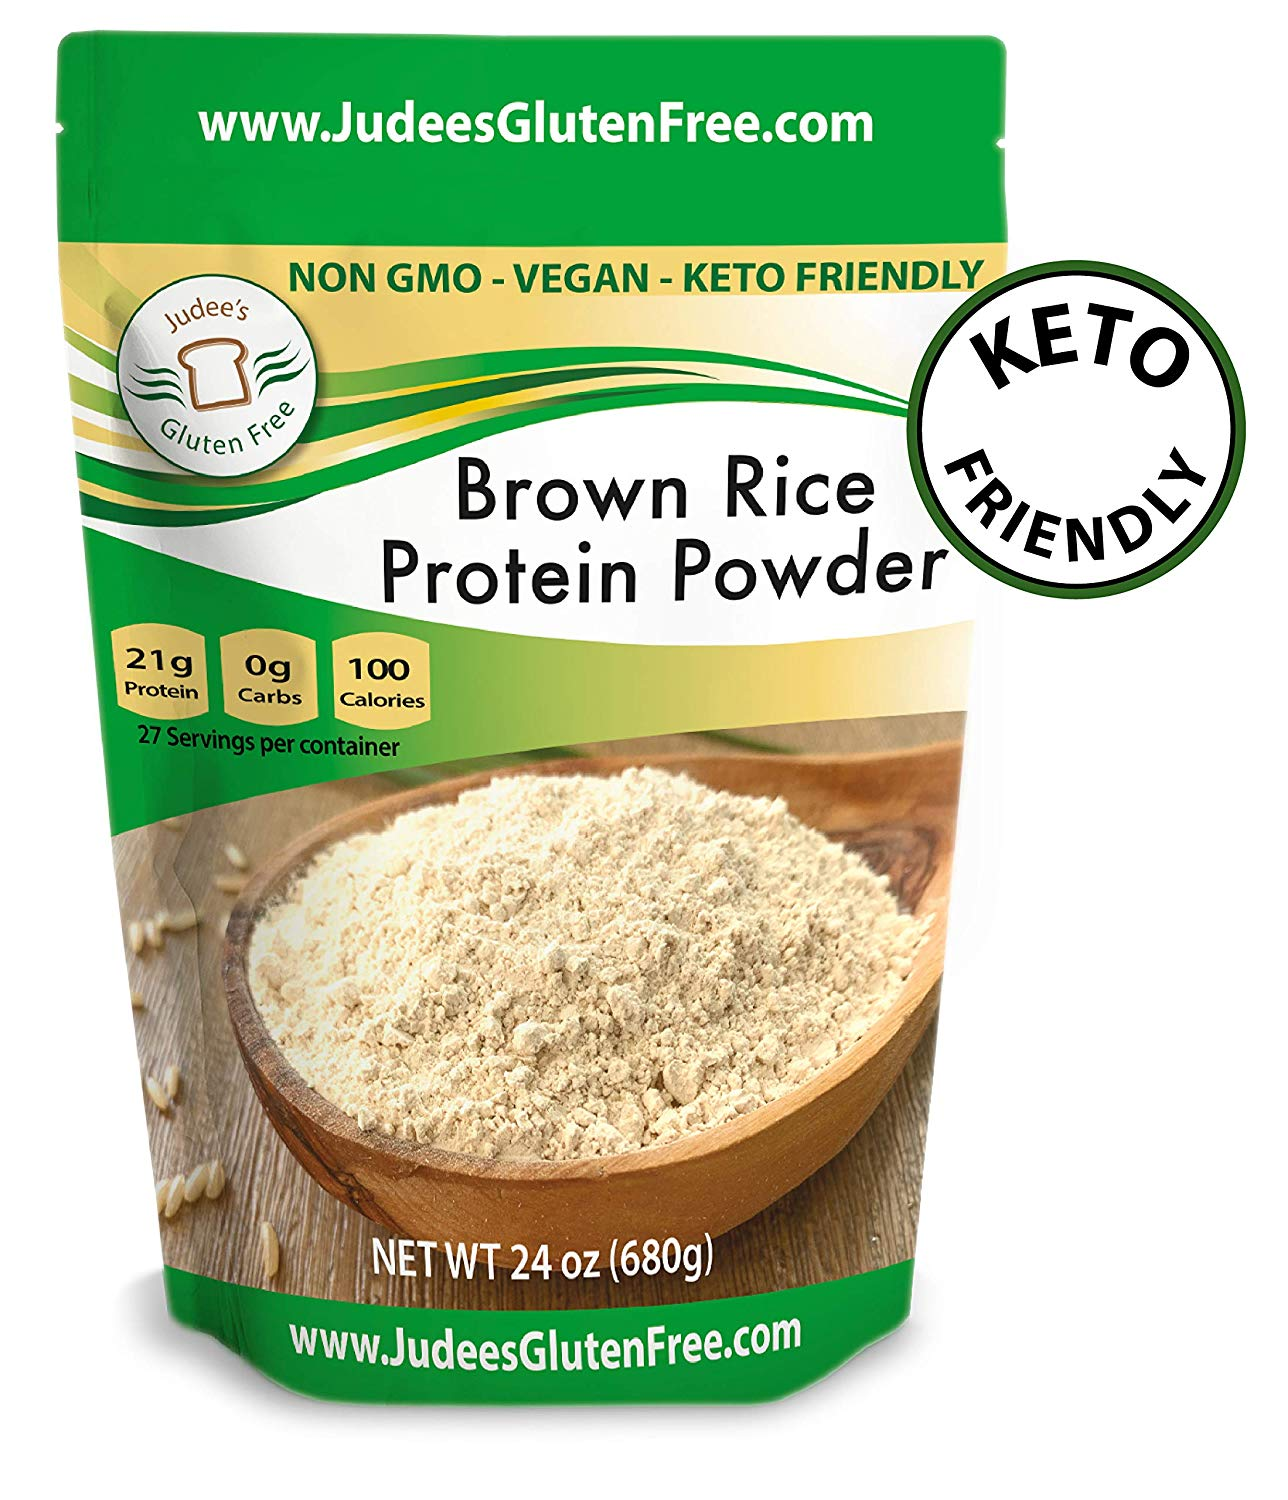 Judee's Gluten Free Brown Rice Protein Powder